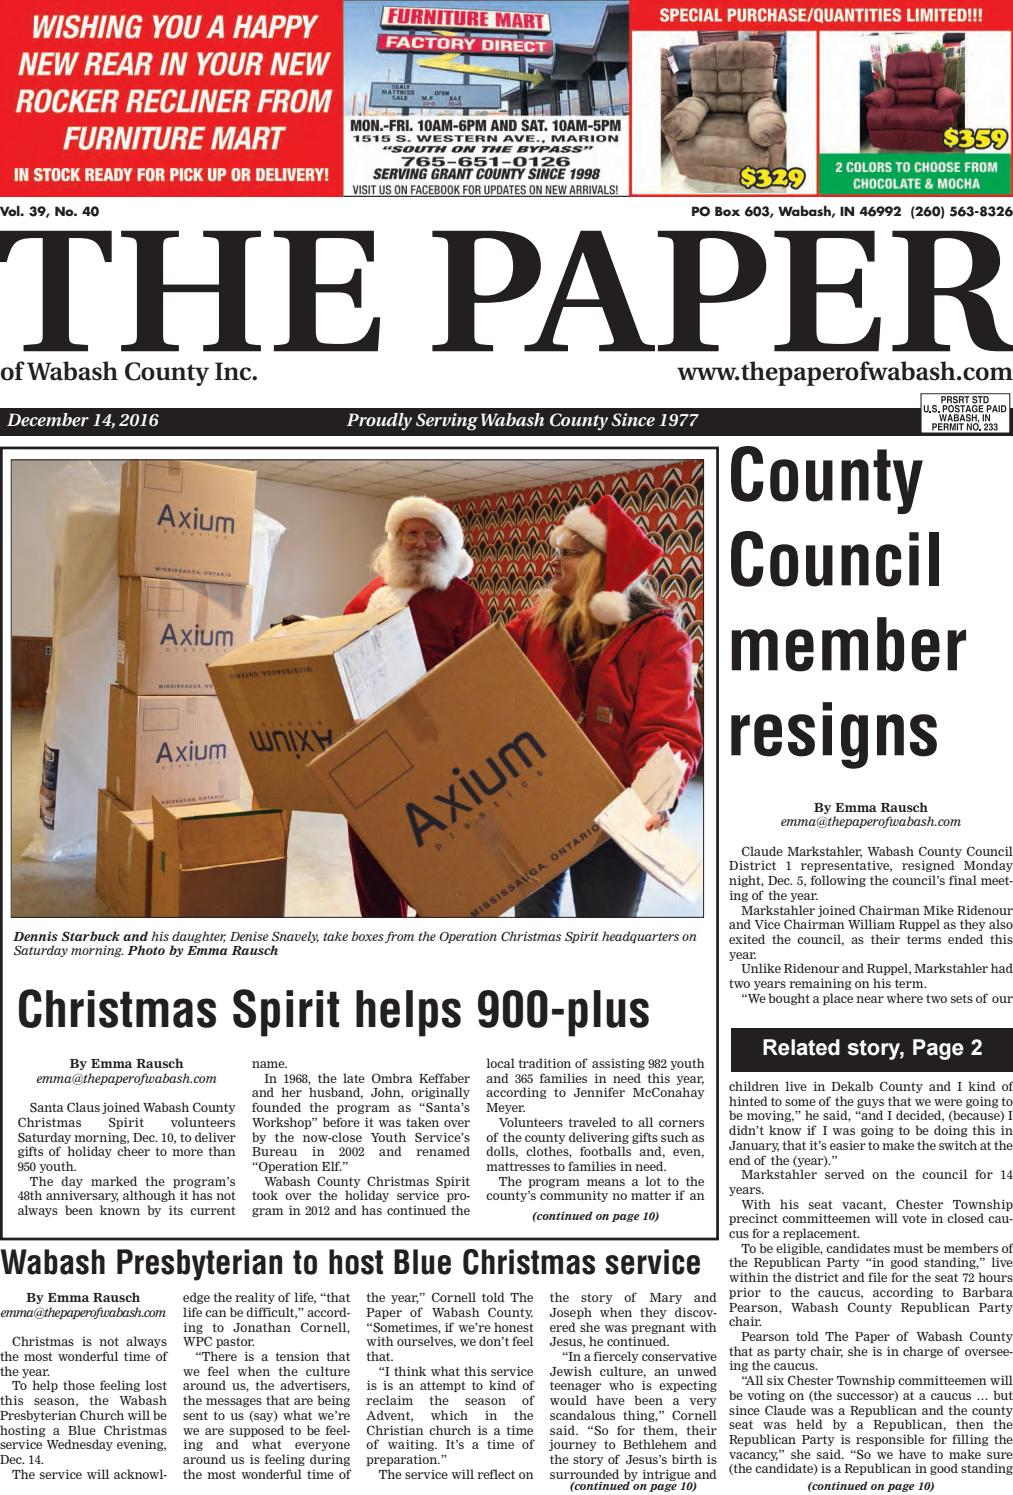 Indiana wabash county lagro - The Paper Of Wabash County Dec 14 2016 Issue By The Paper Of Wabash County Issuu